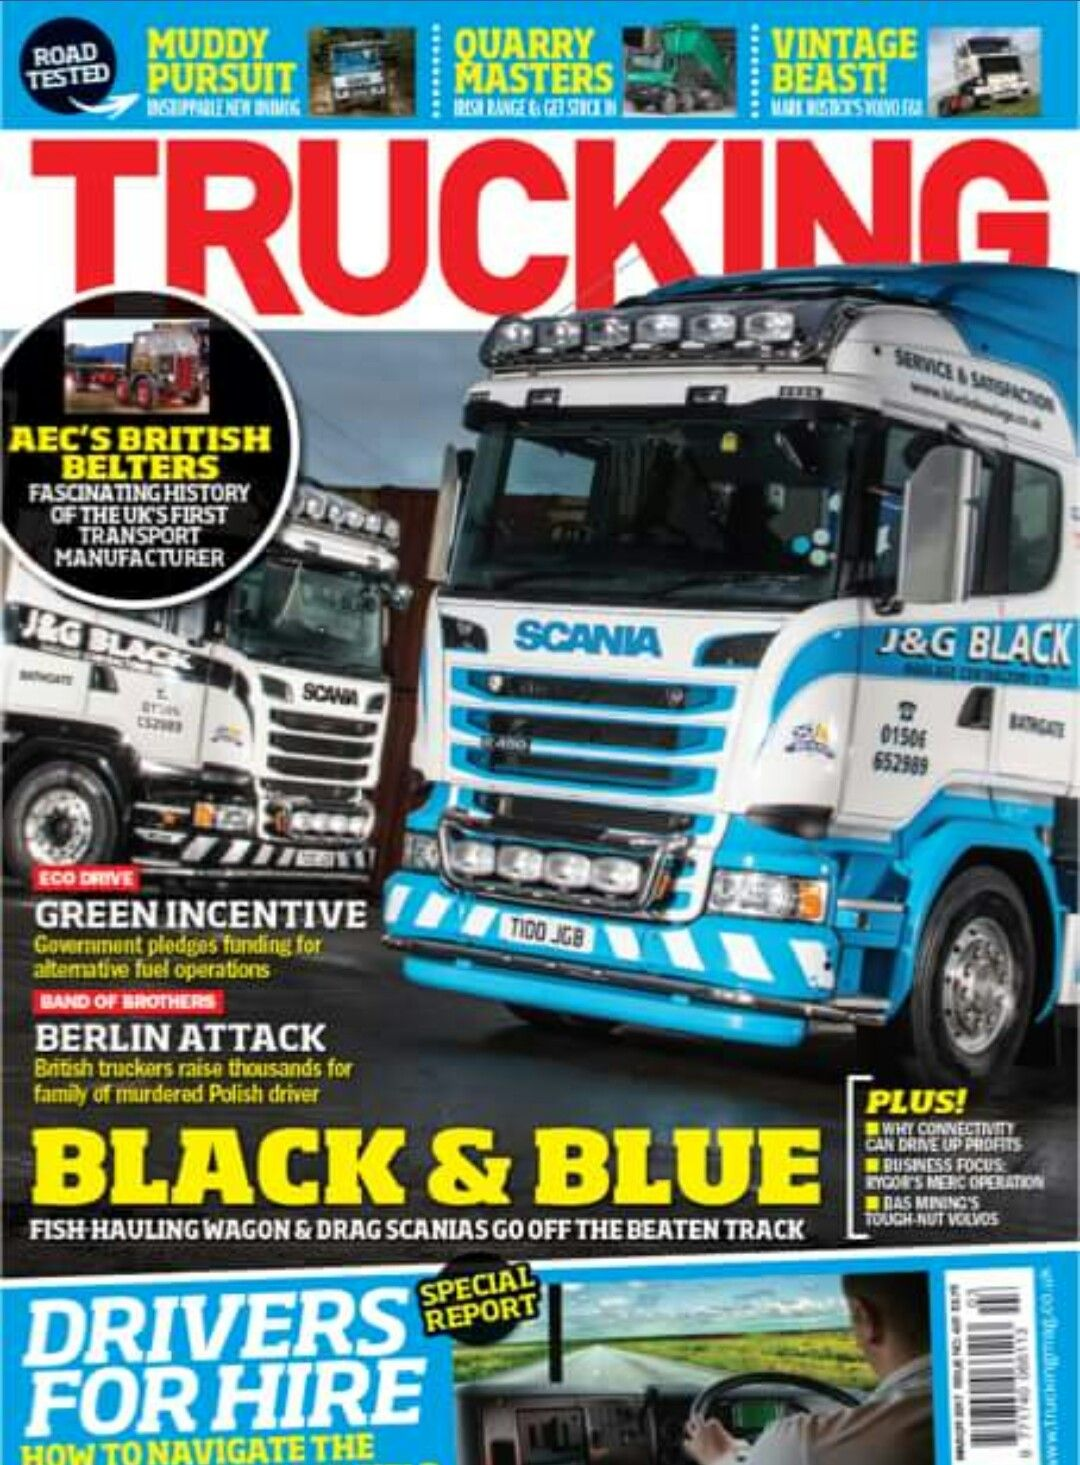 tractors trucks plant comic book construction magazines advertising social media - Online Advertising Specialist